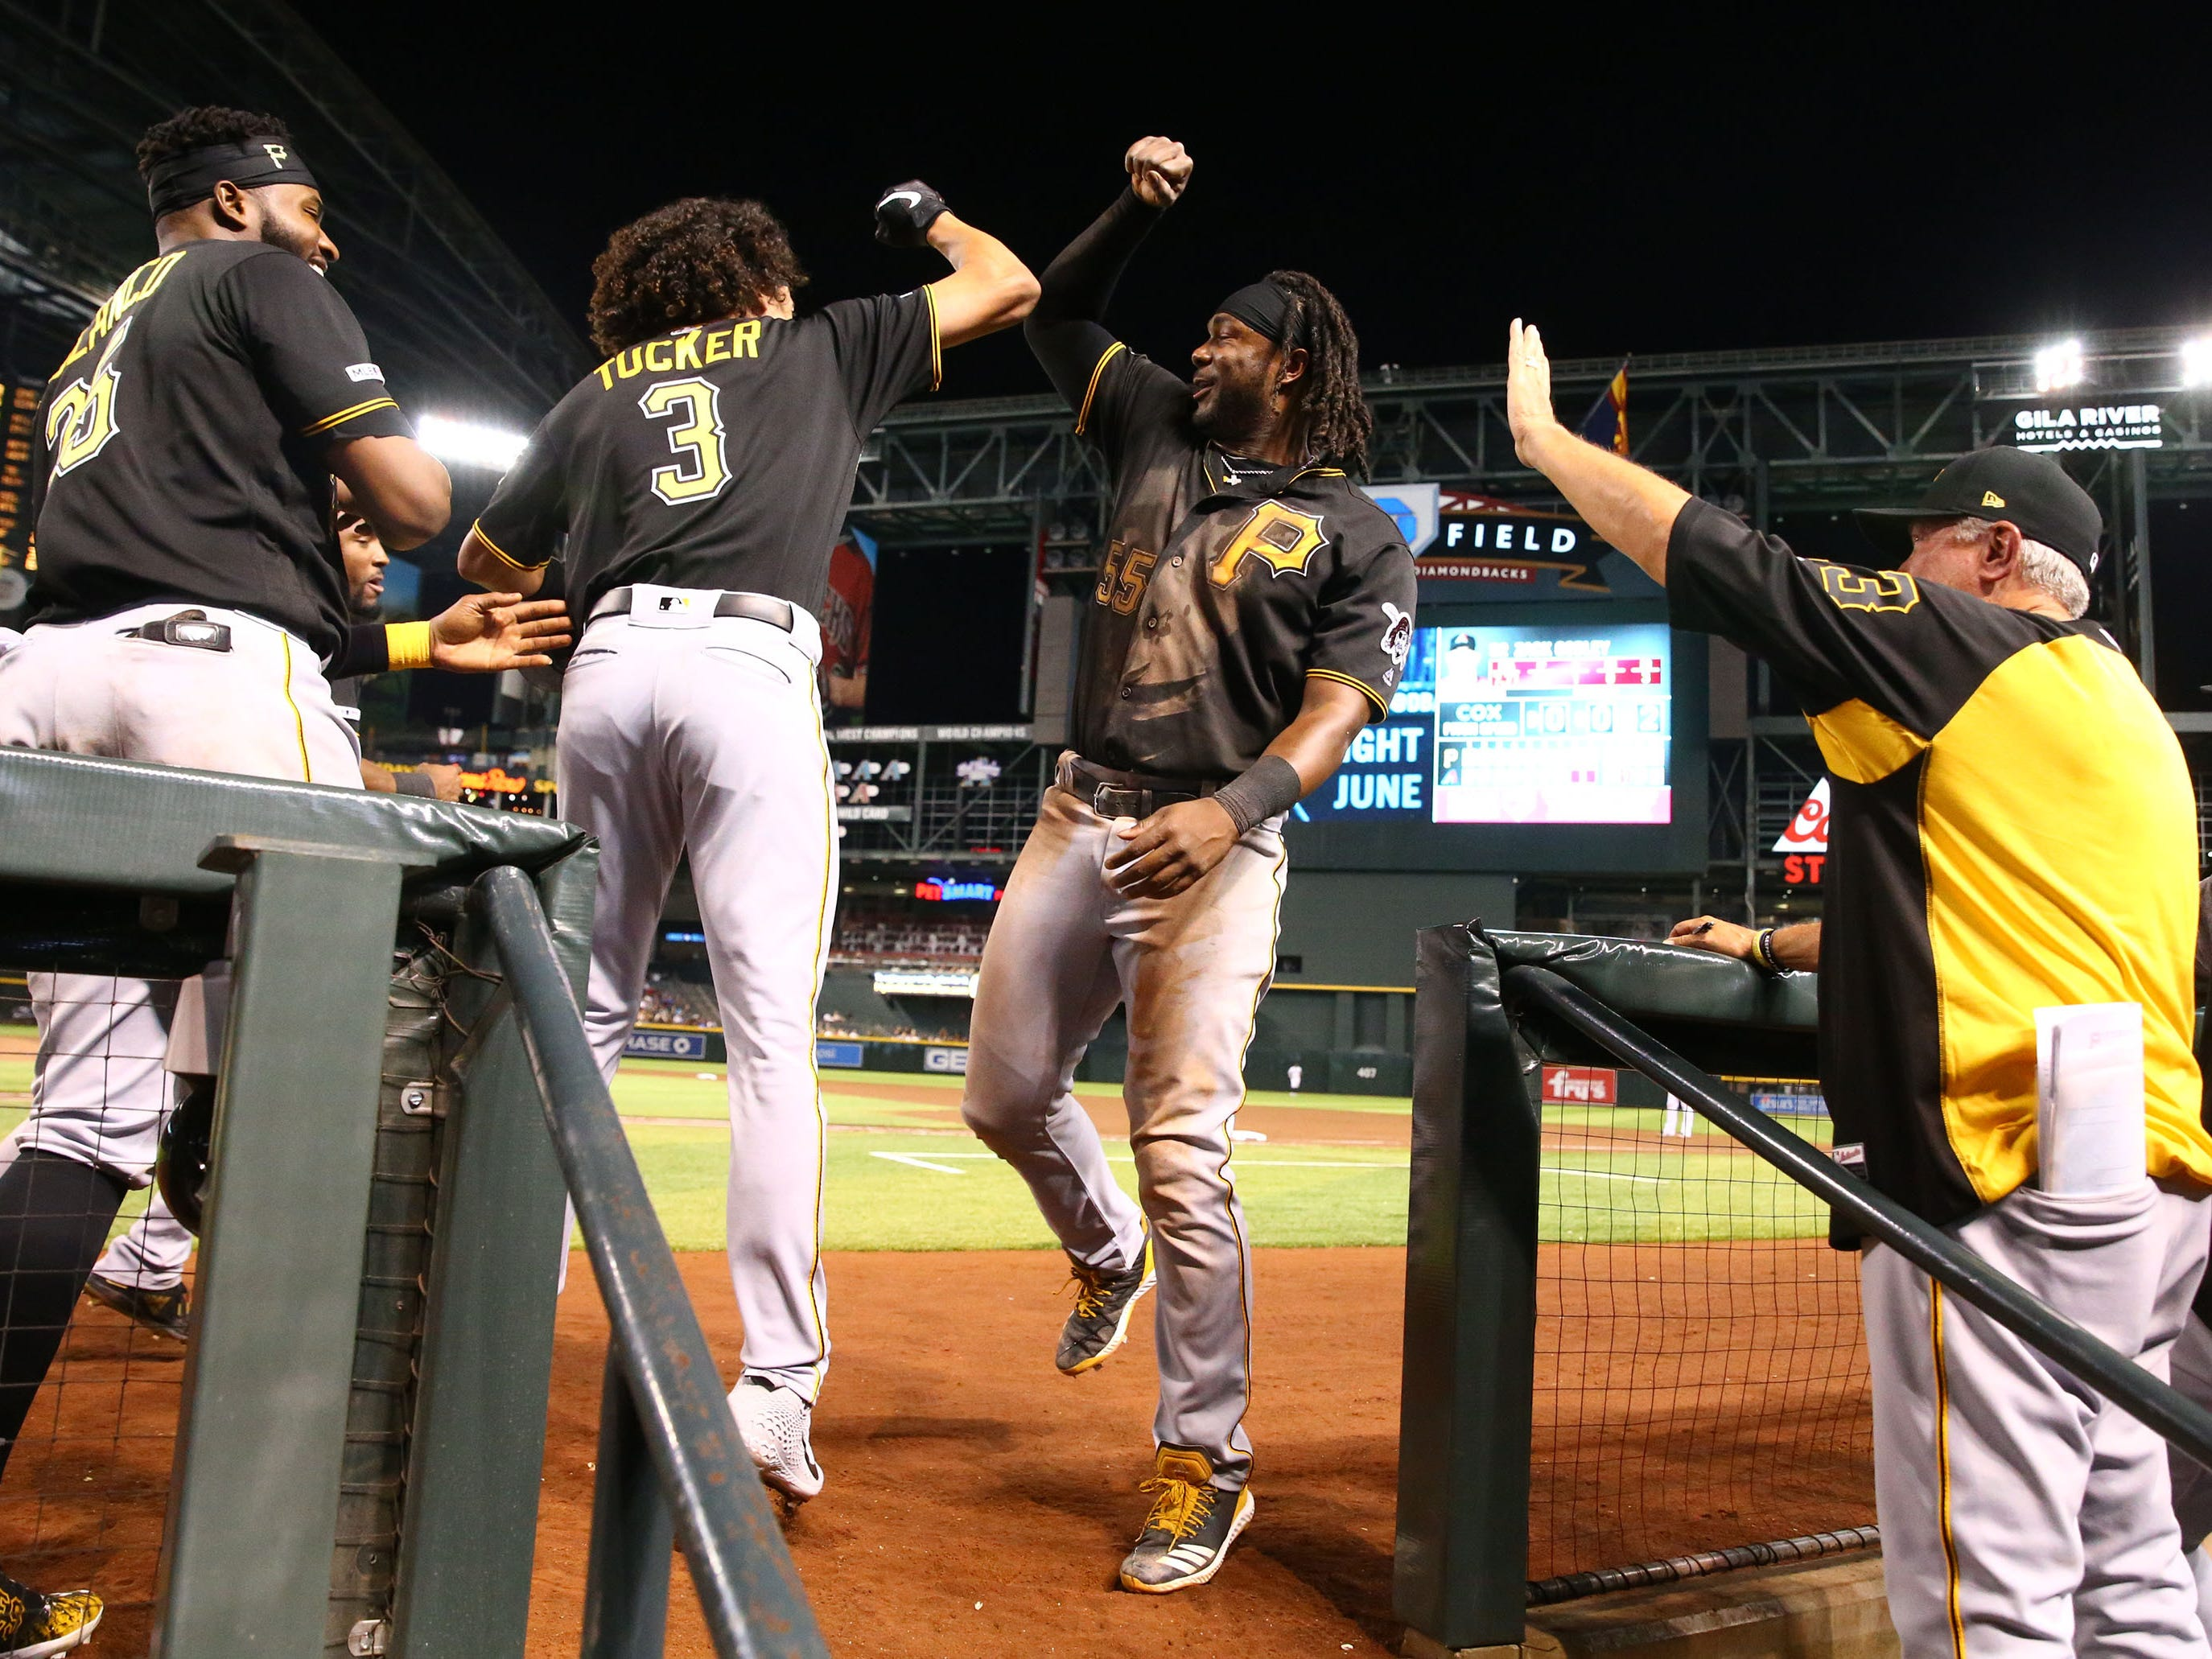 Pittsburgh Pirates' Cole Tucker (3) celebrates after hitting a 2-run home run off Arizona Diamondbacks pitcher Zack Godley in the eighth inning on May. 14, 2019 at Chase Field in Phoenix, Ariz.